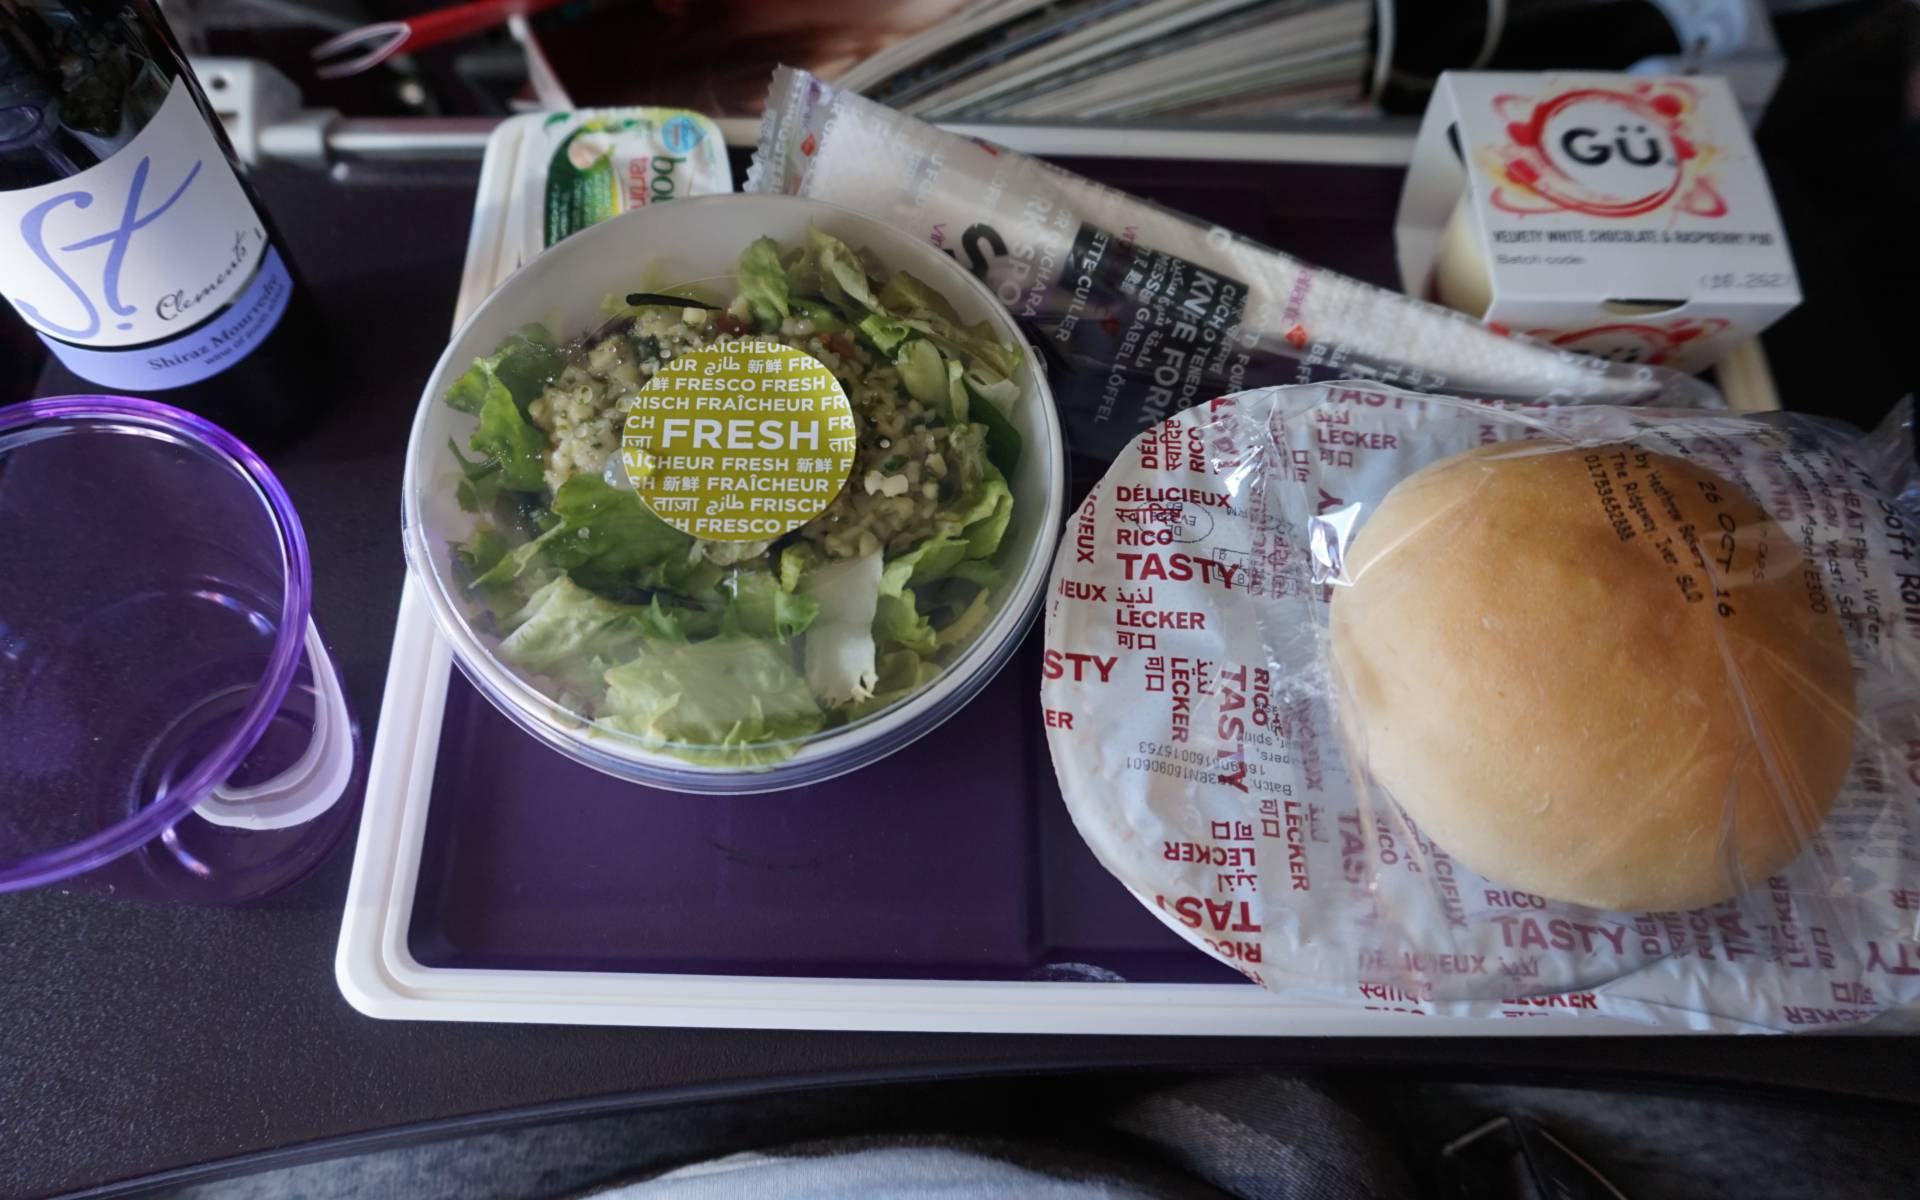 Virgin-Atlantic-Inflight-Adult-Meal